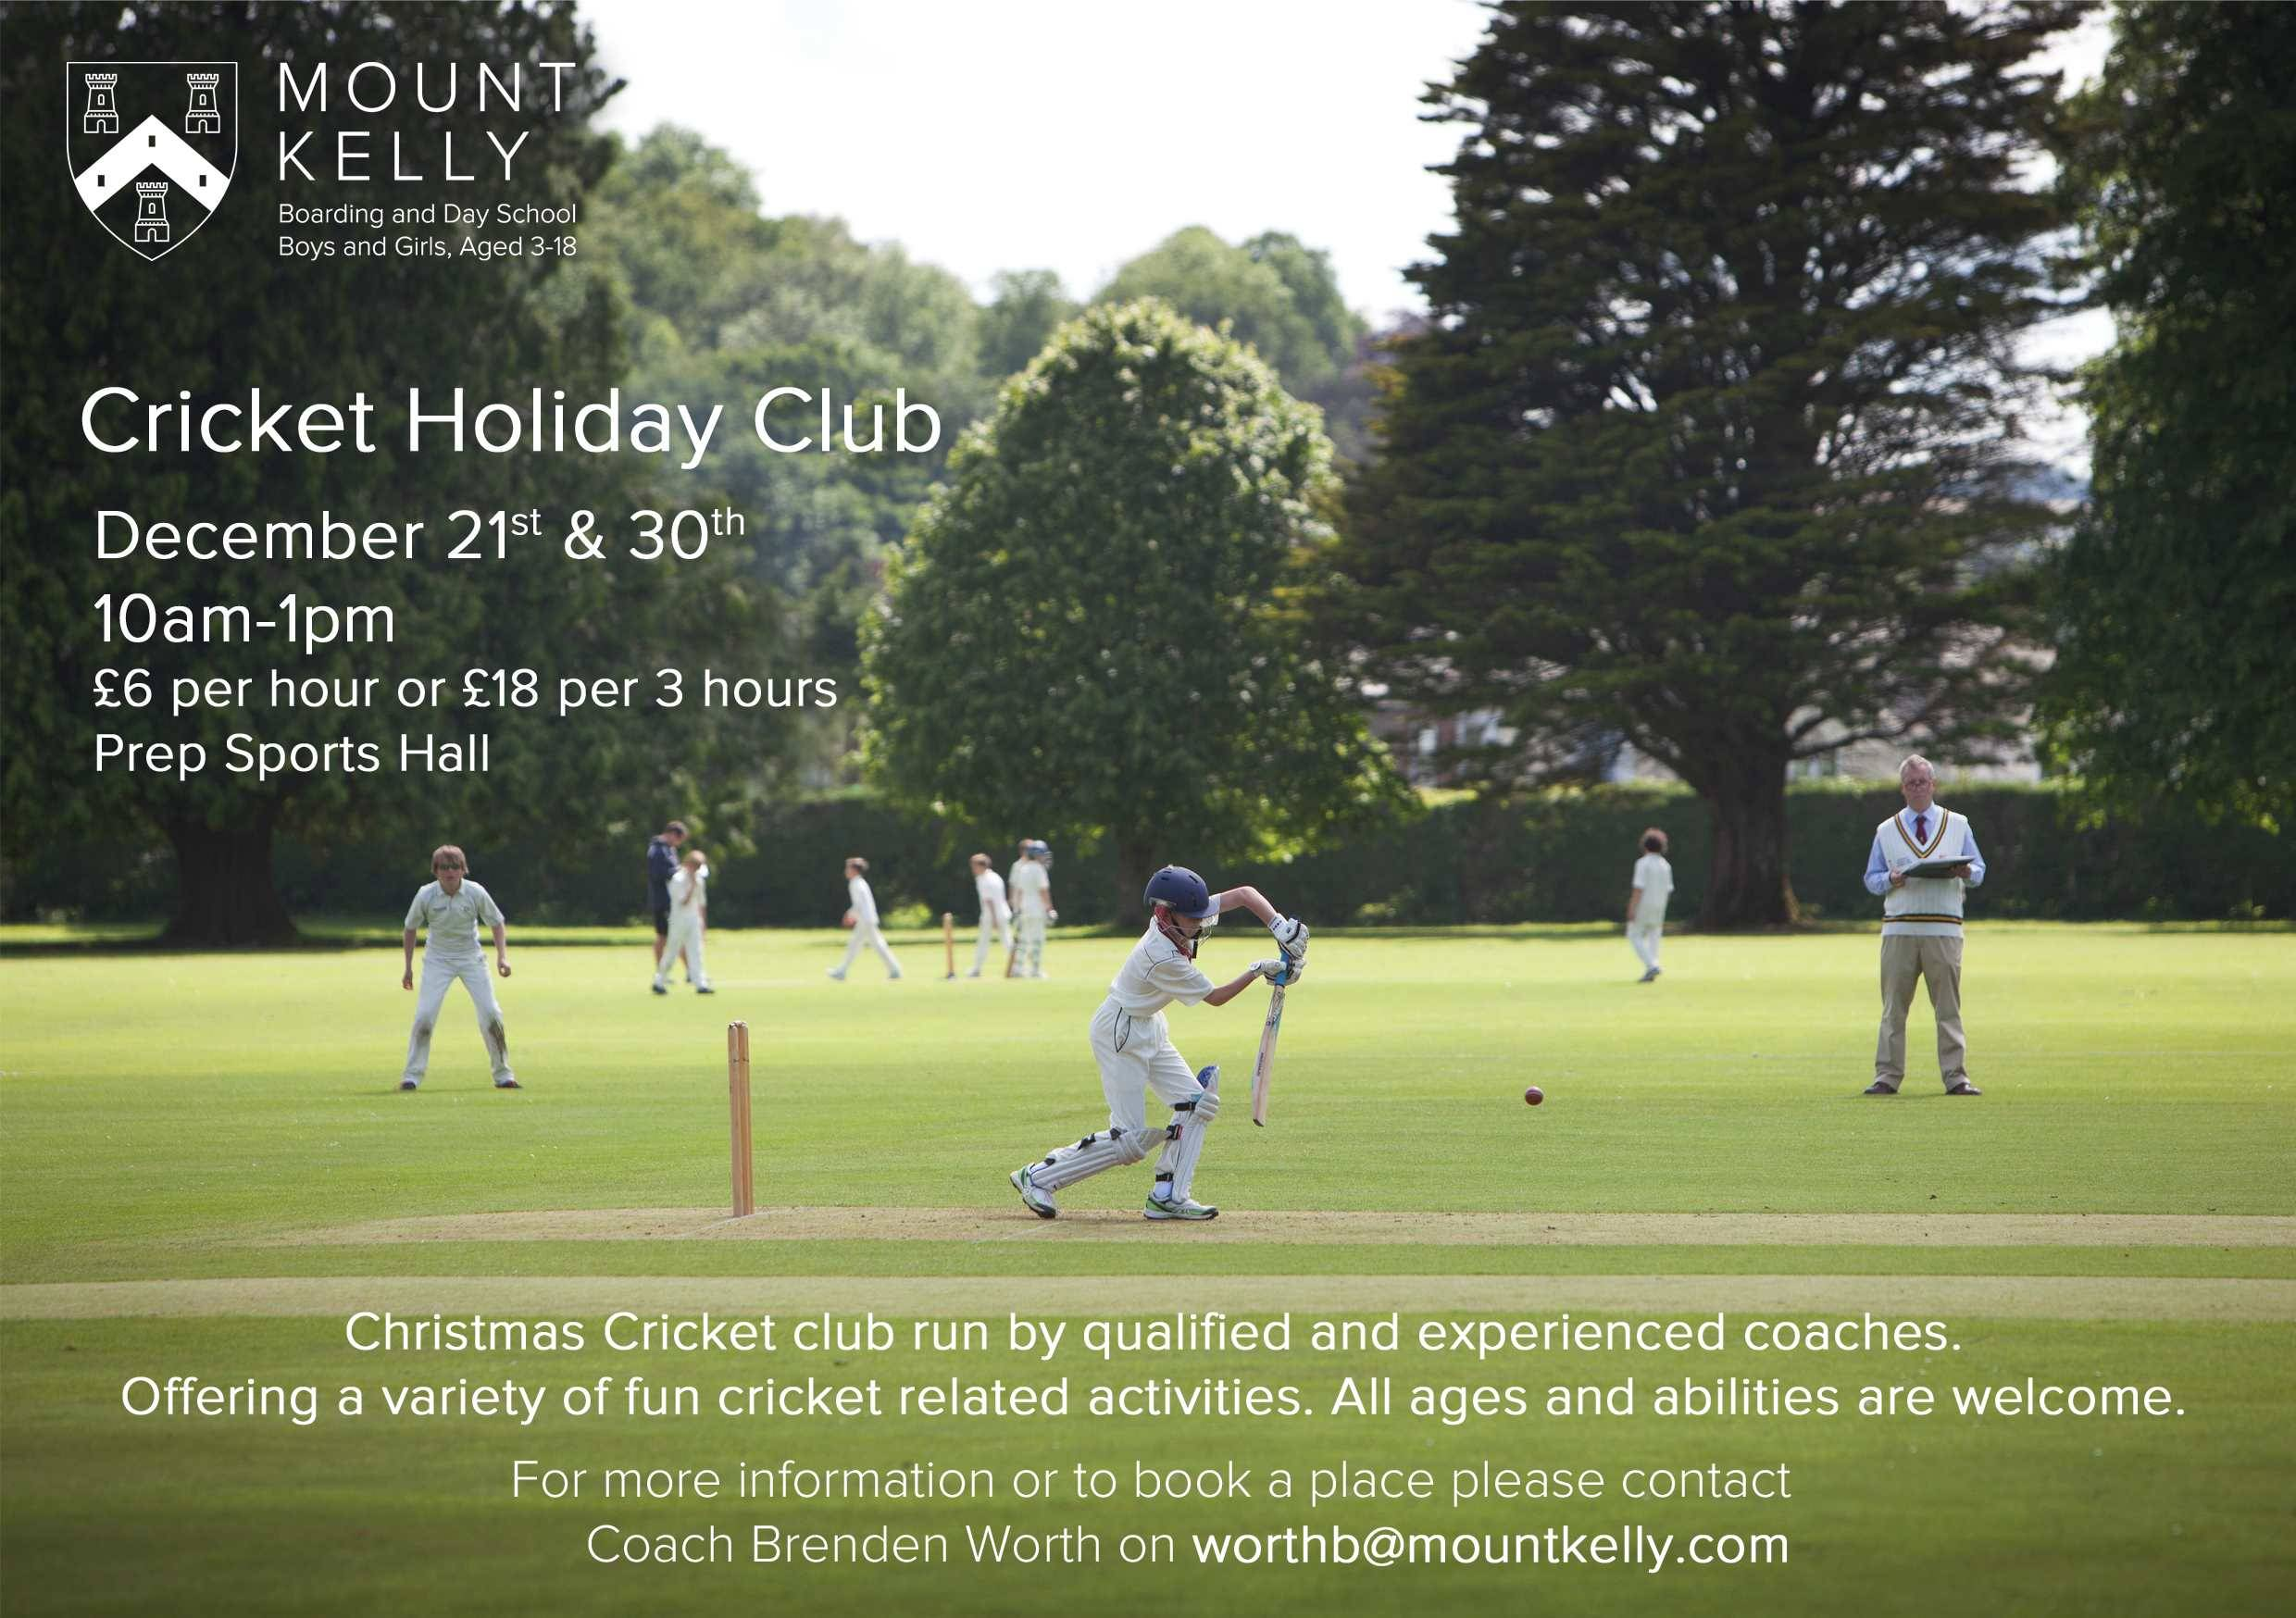 Cricket Holiday Club